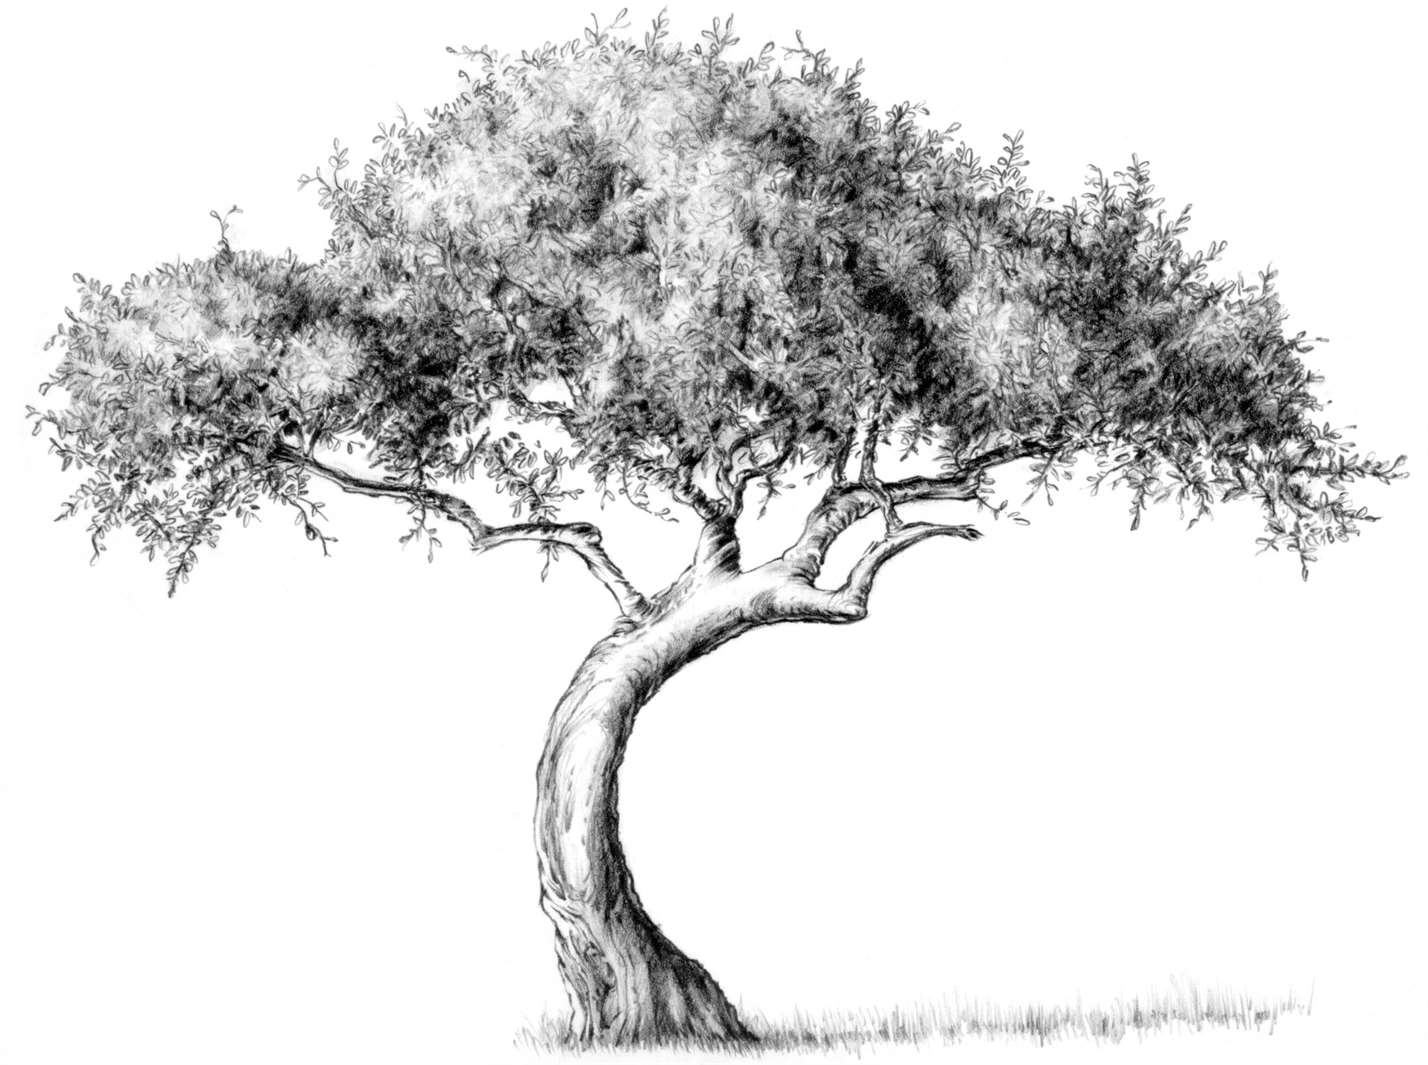 How To Draw A Tree Drawing Tutorials Outline Guades Tips For Artists Art Blog Www Swasky Net